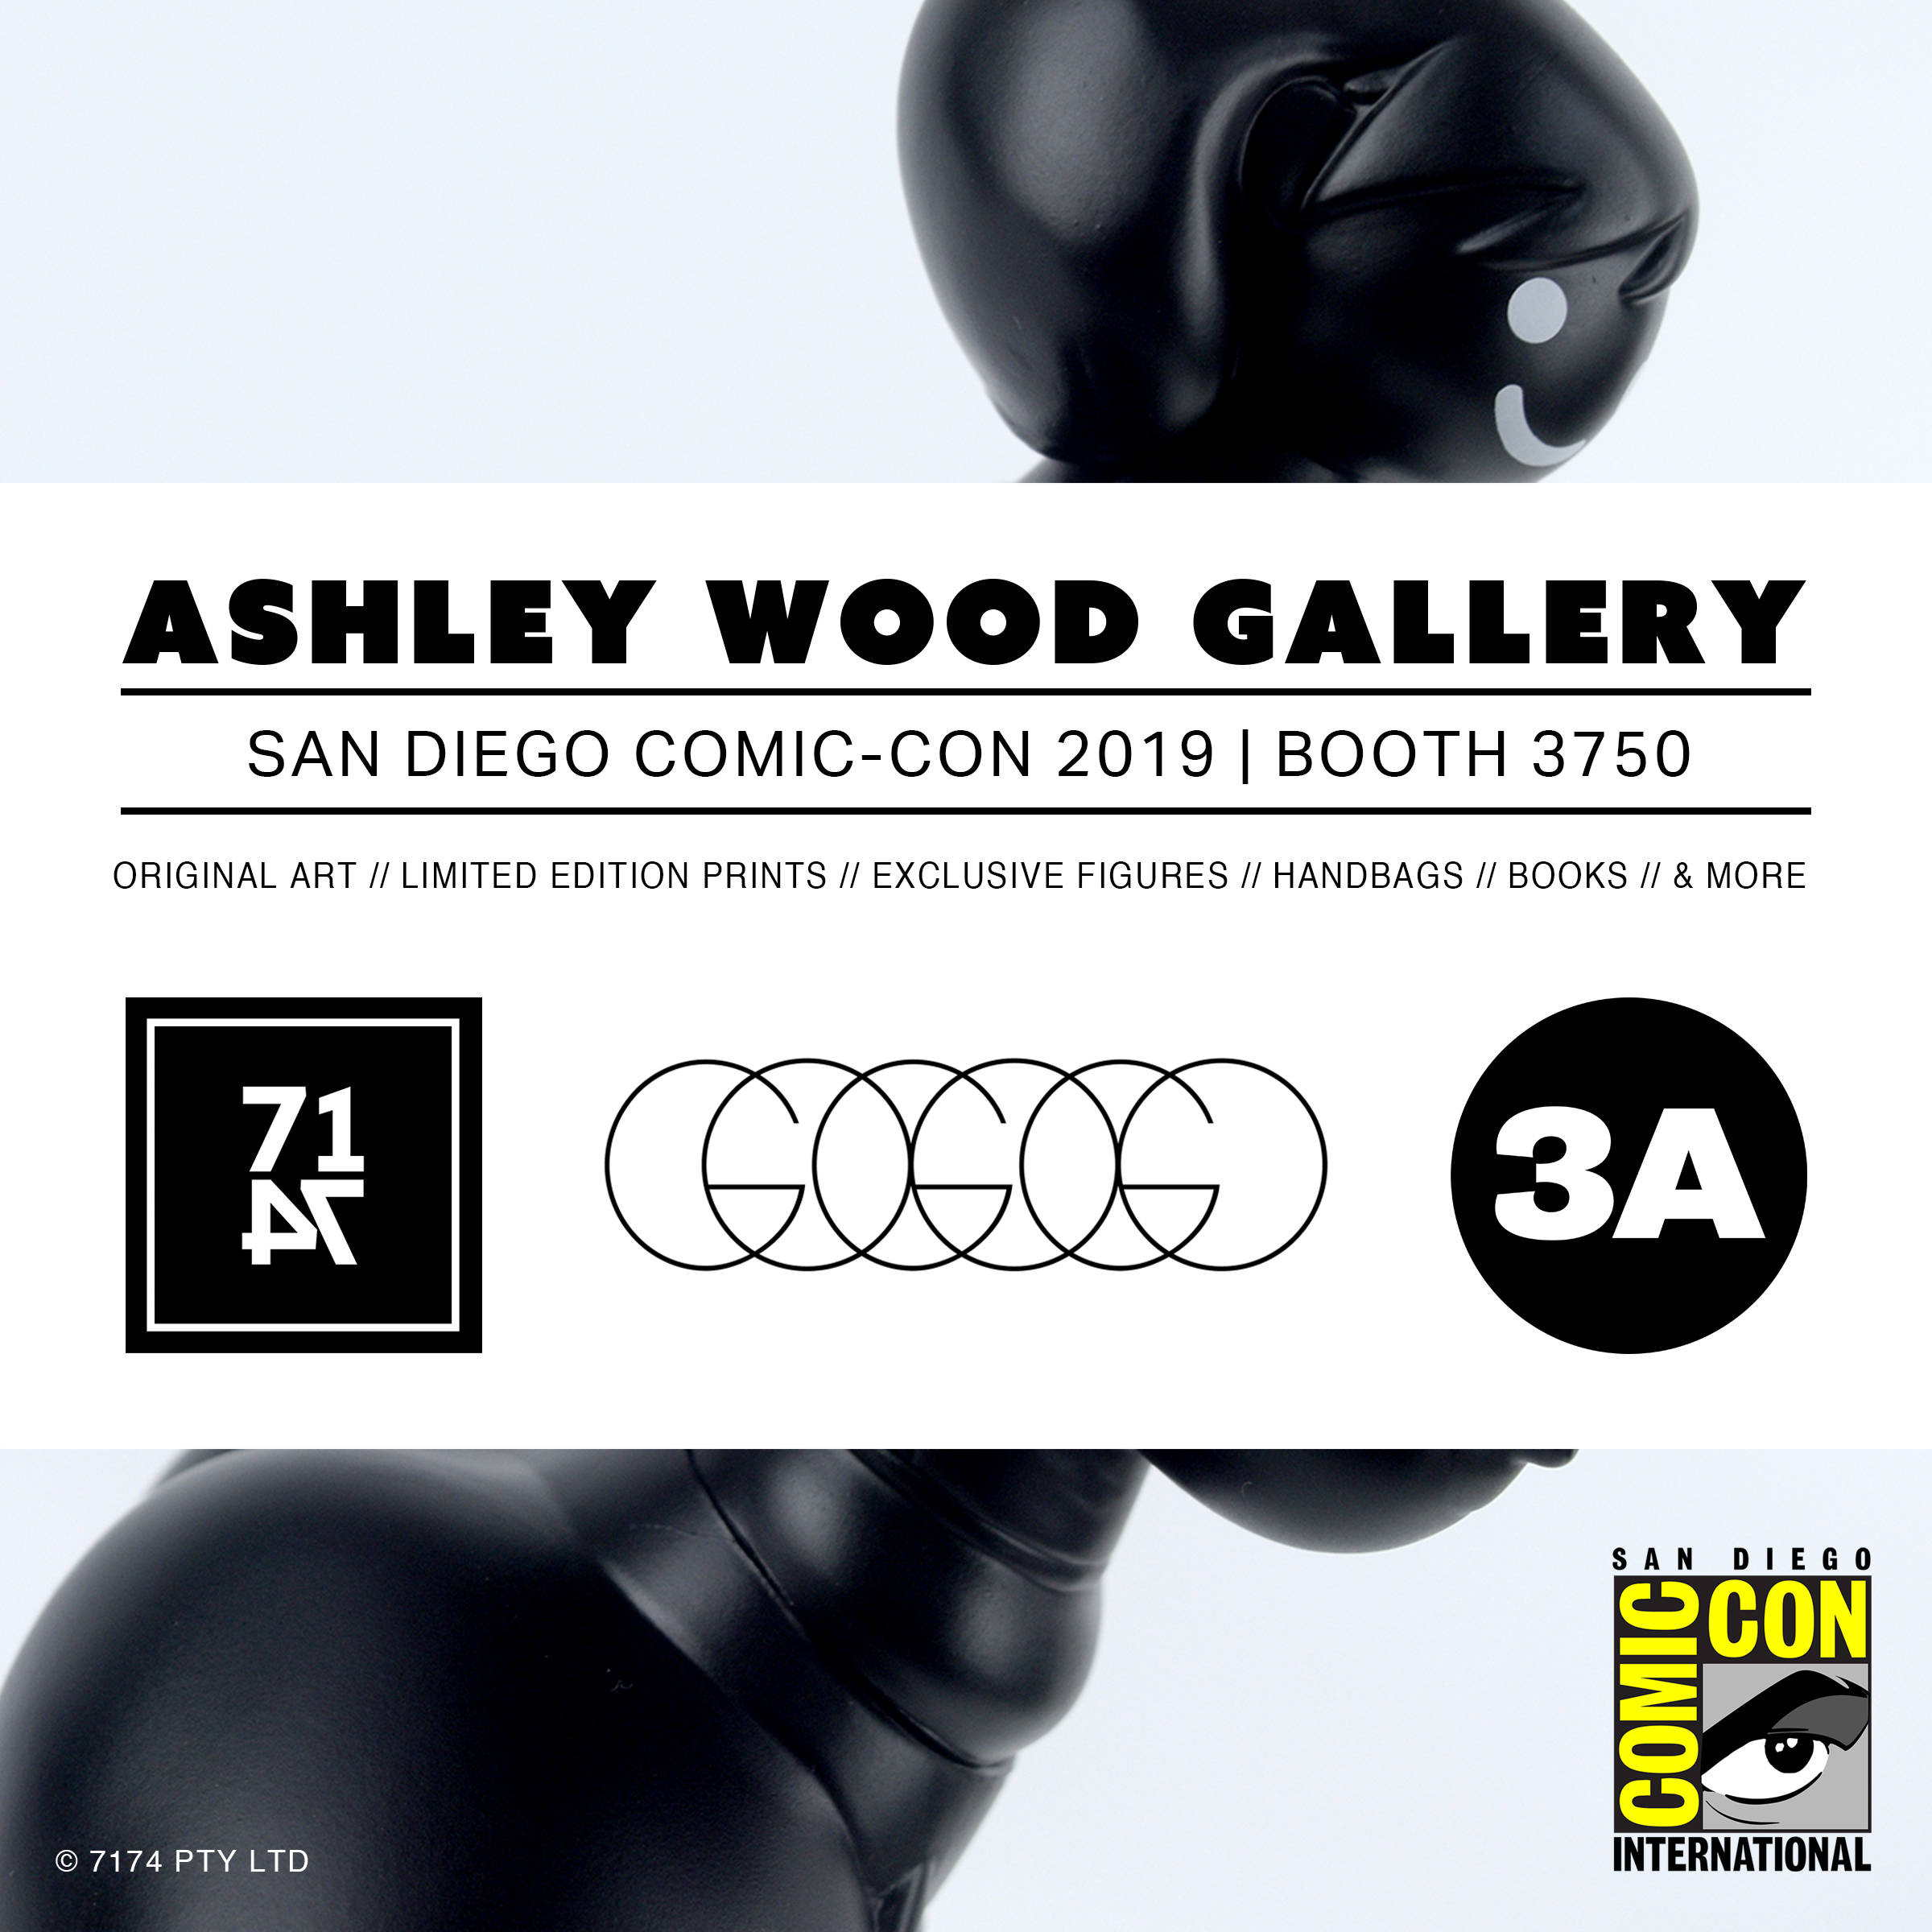 SDCC 2019 - 3A will be attending this year's SDCC at the Ashley Wood Gallery Booth 3750!Exclusive Figures including the very last Fang Gals, Show Edition Ultra TK's, and a small supply of Stock Figures will be available for sale at the booth. Original Art, Limited Edition Prints, Exclusive Figures, Handbags from GoGoGo, Books, & more!